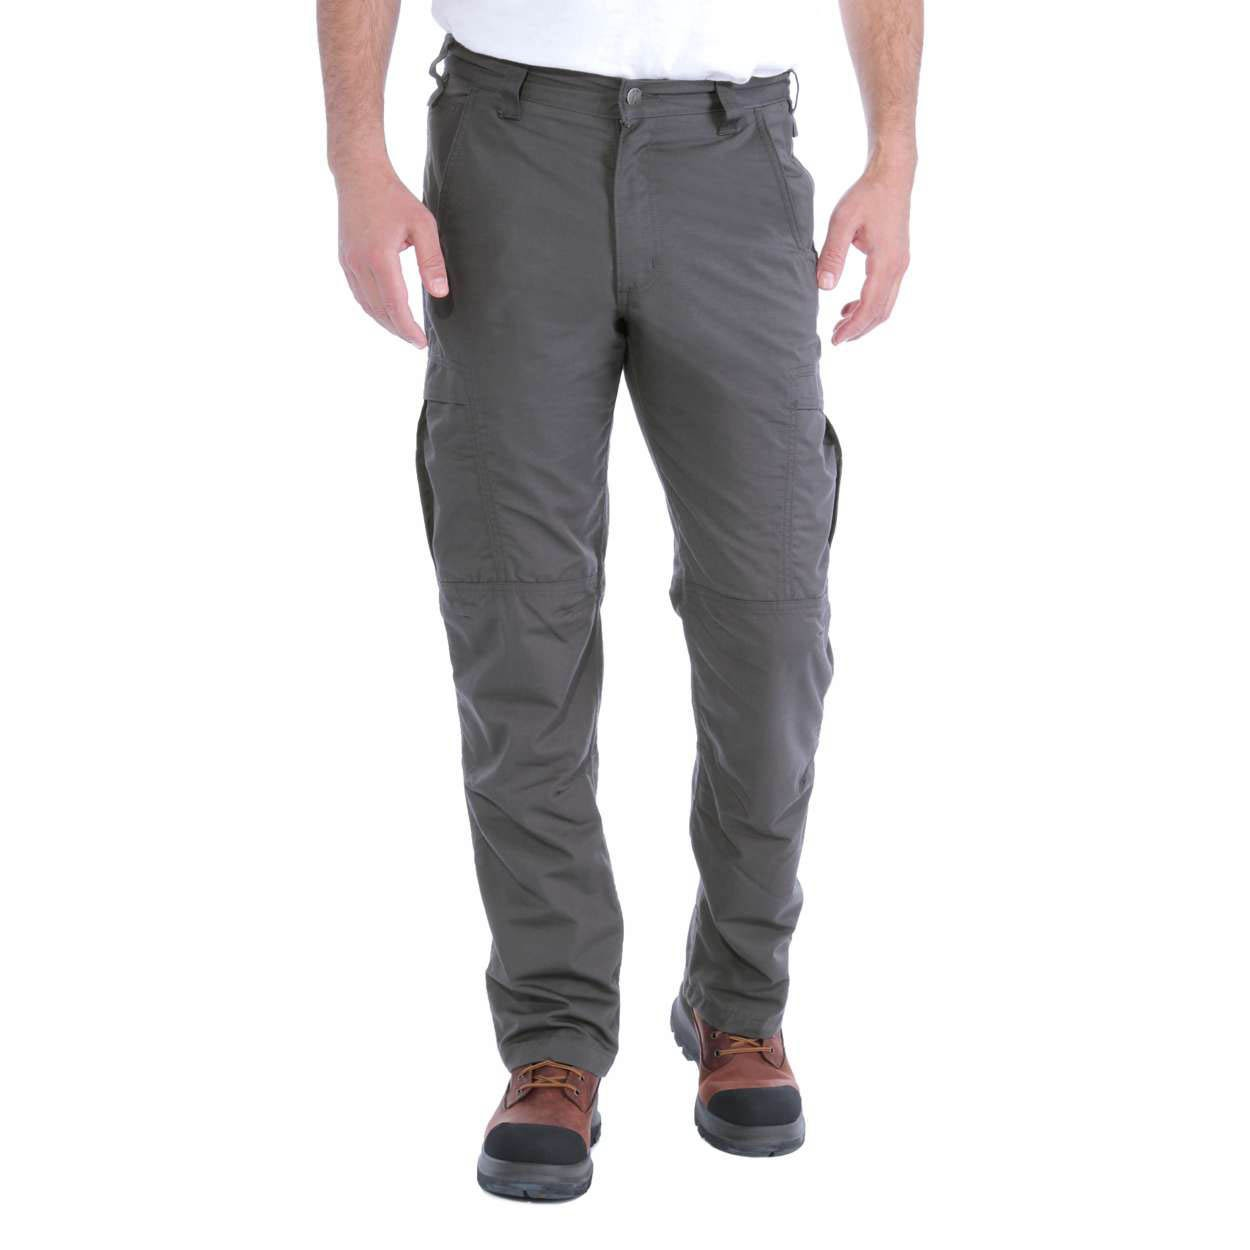 c0a469886e Carhartt 101964 Force Extremes Rugged Flex Pant - Work Trousers ...